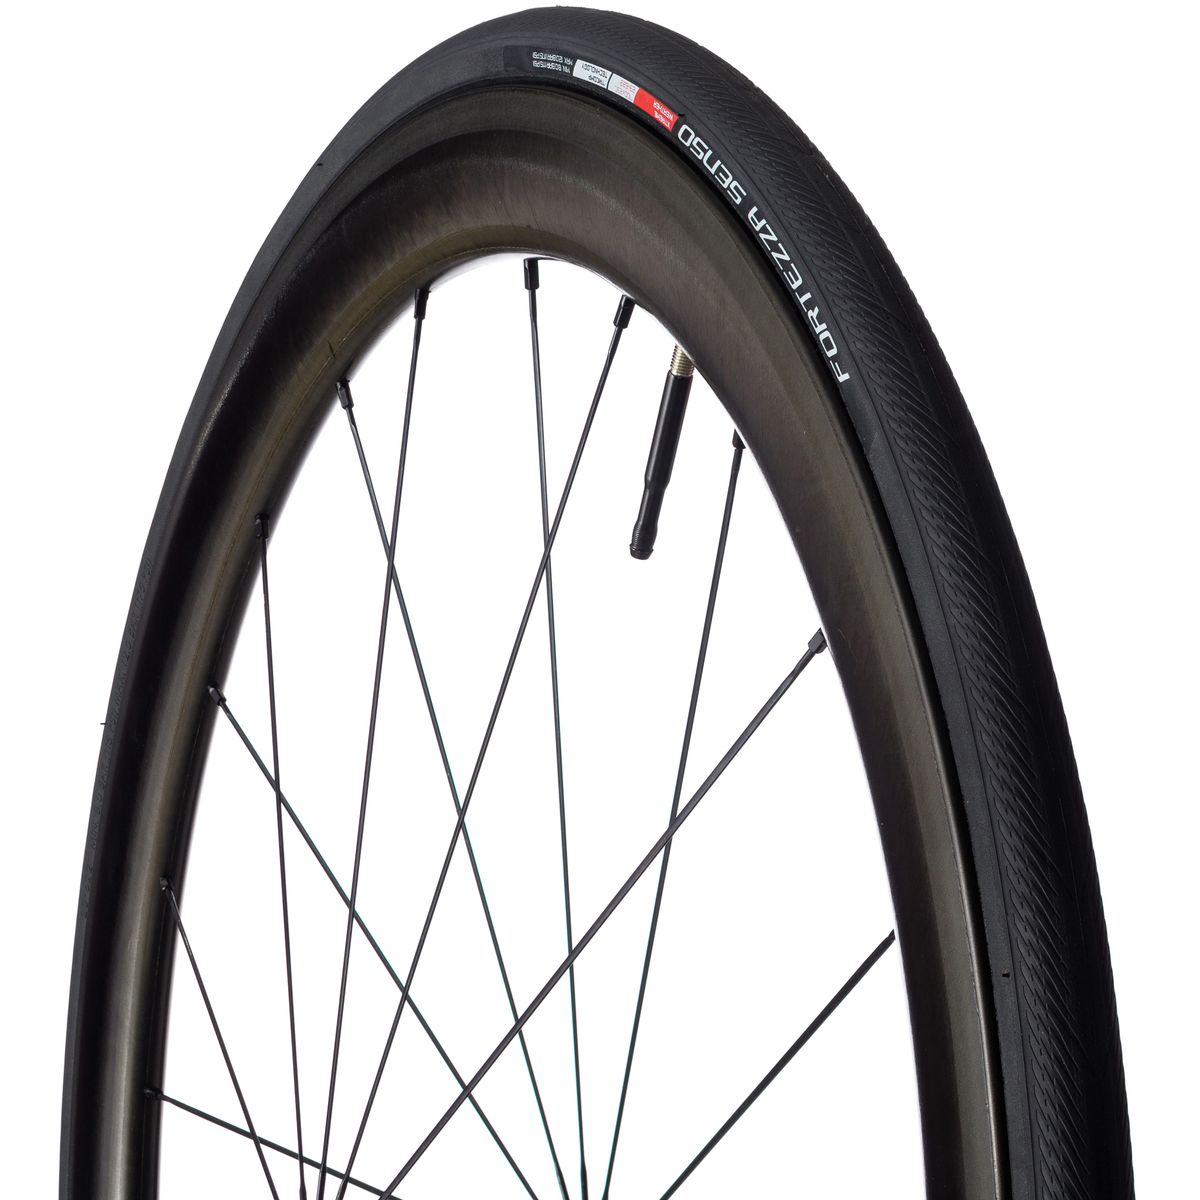 3 Best Road And Tri Bike Tires Complete Tri